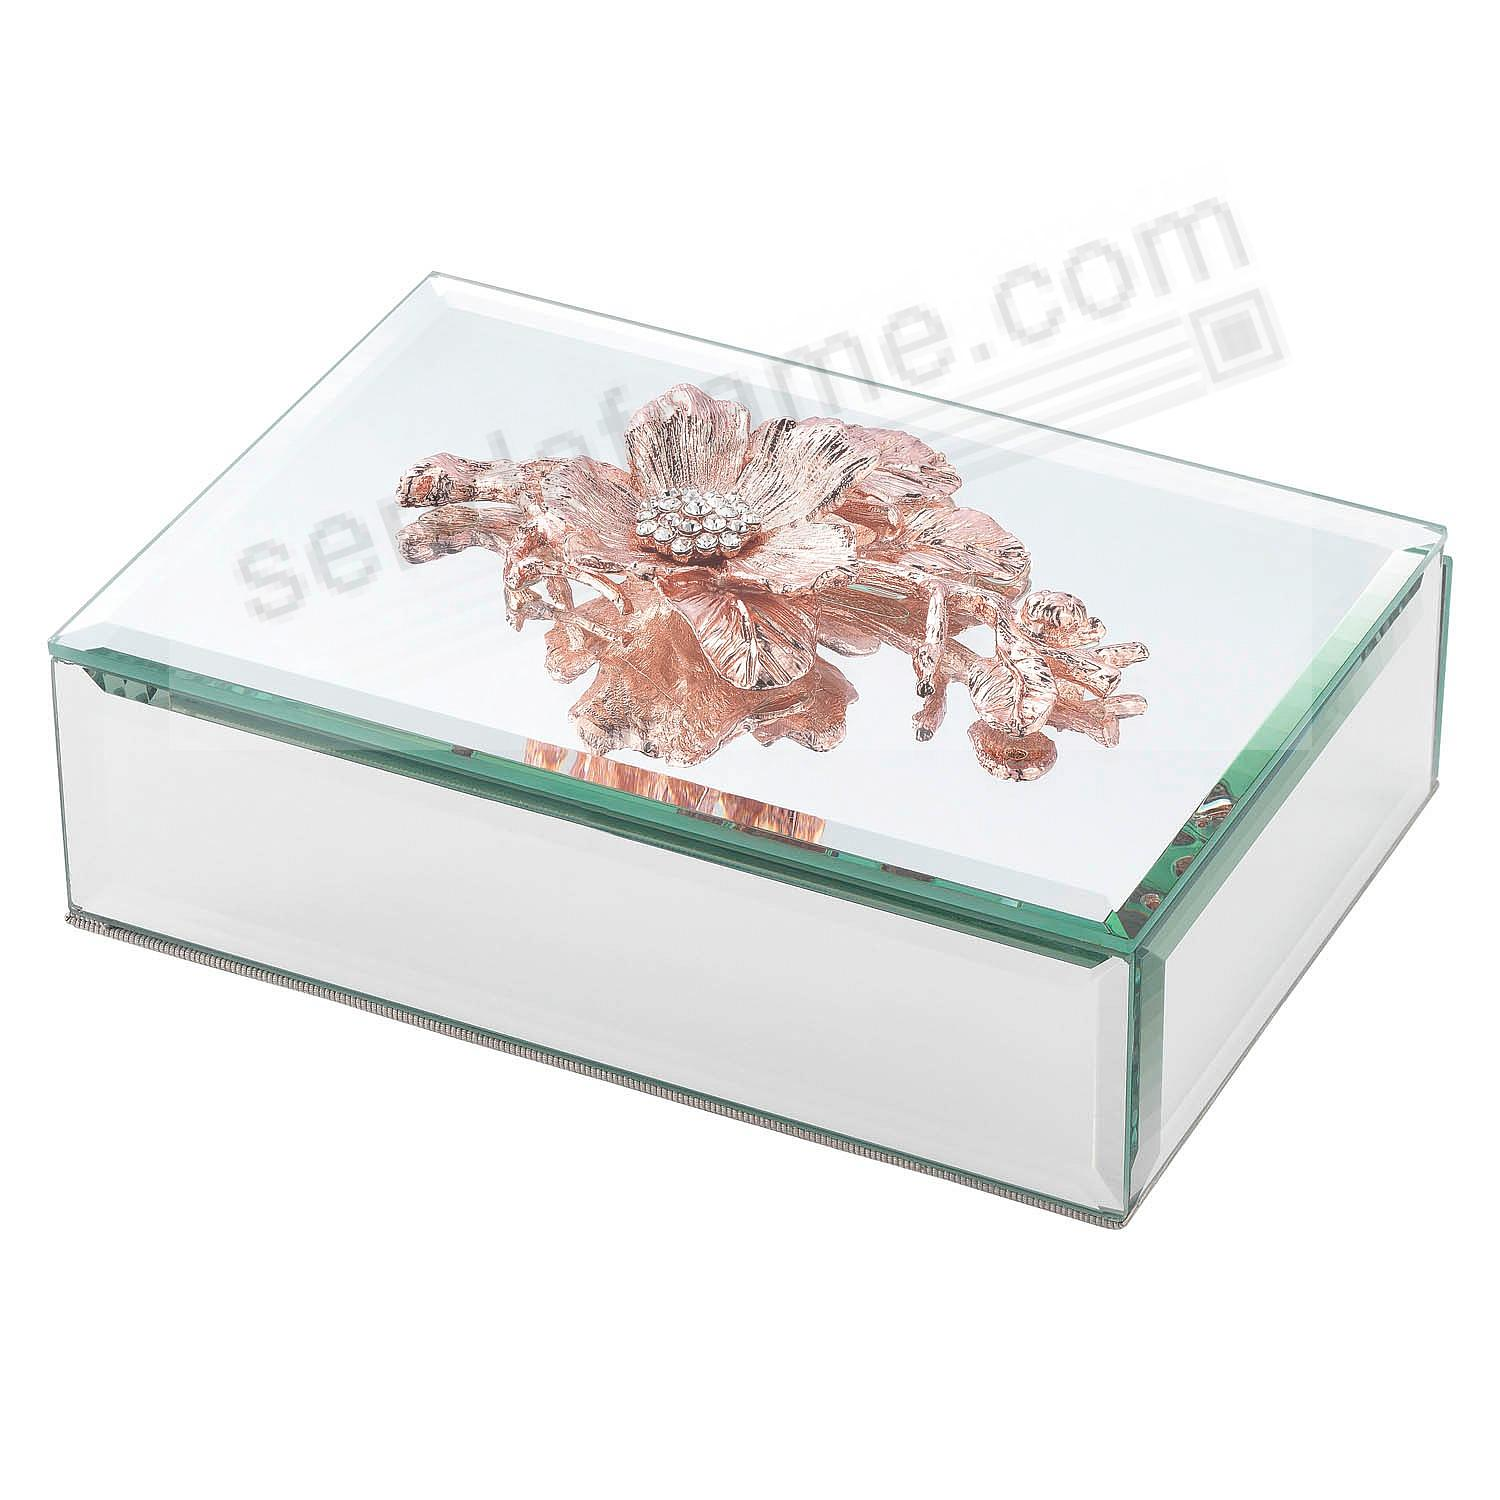 ROSE-GOLD BOTANICA BOX by Olivia Riegel®